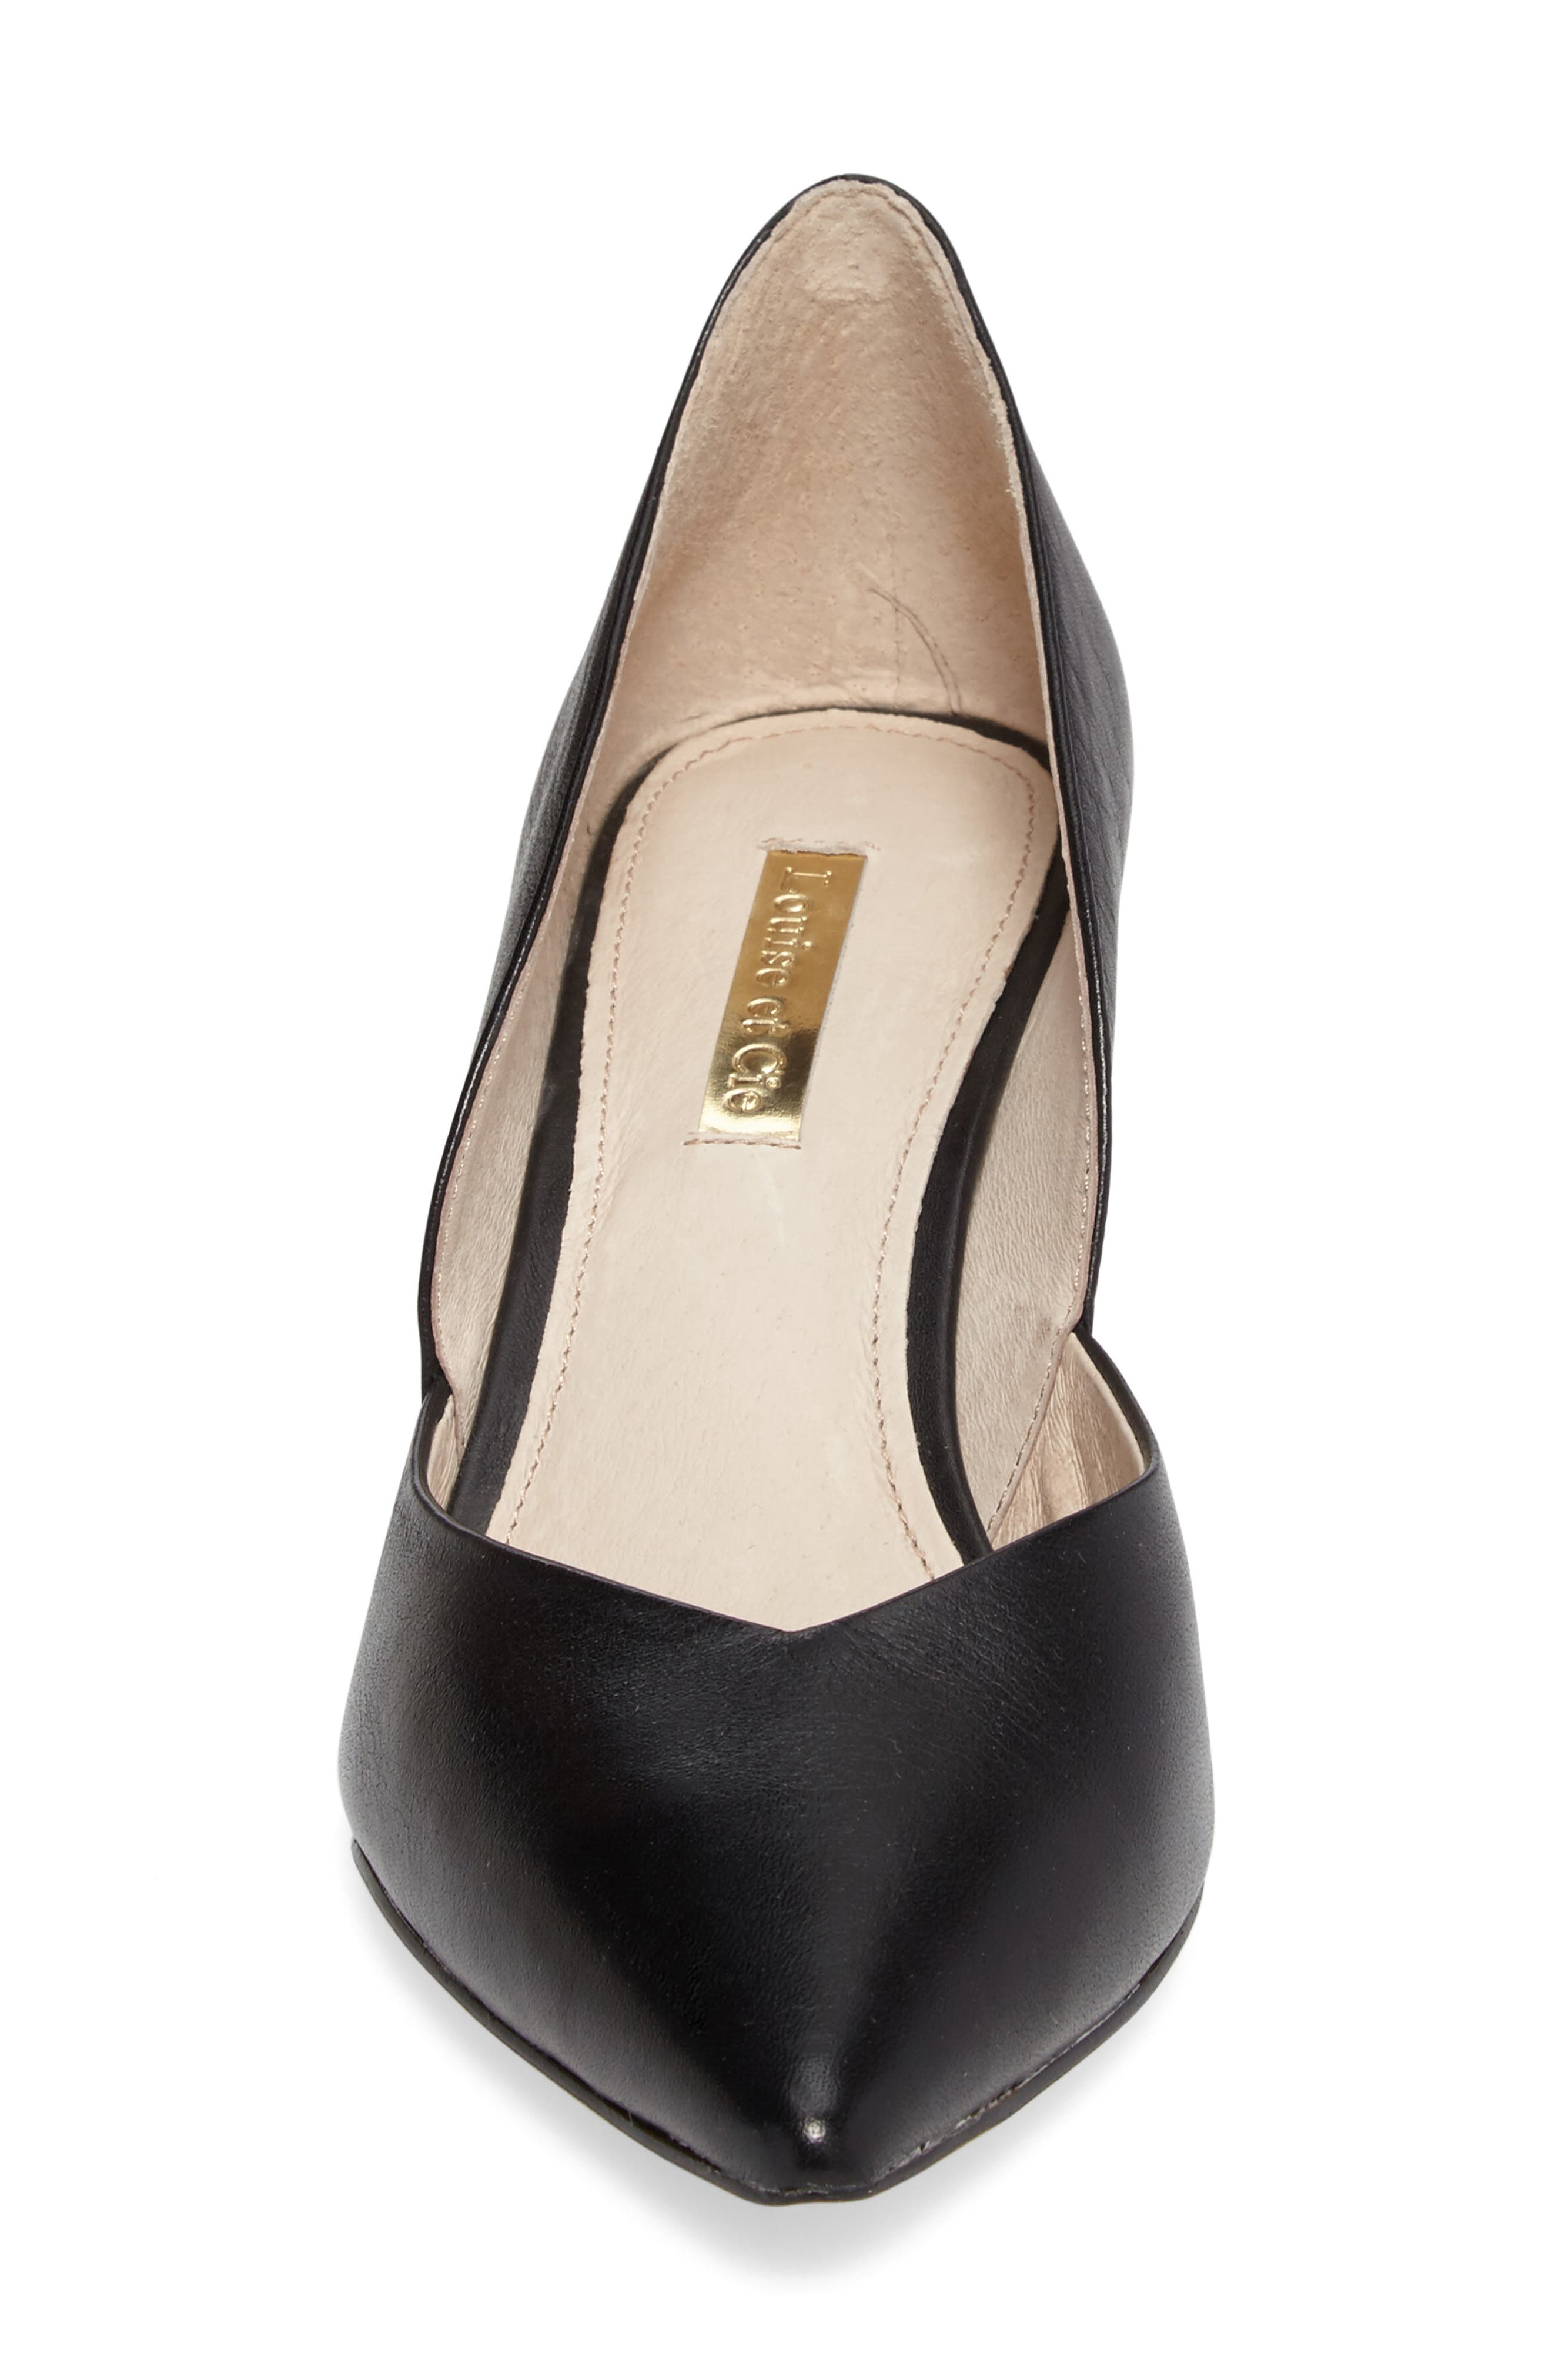 Jacee Pointy Toe Pump,                             Alternate thumbnail 4, color,                             002